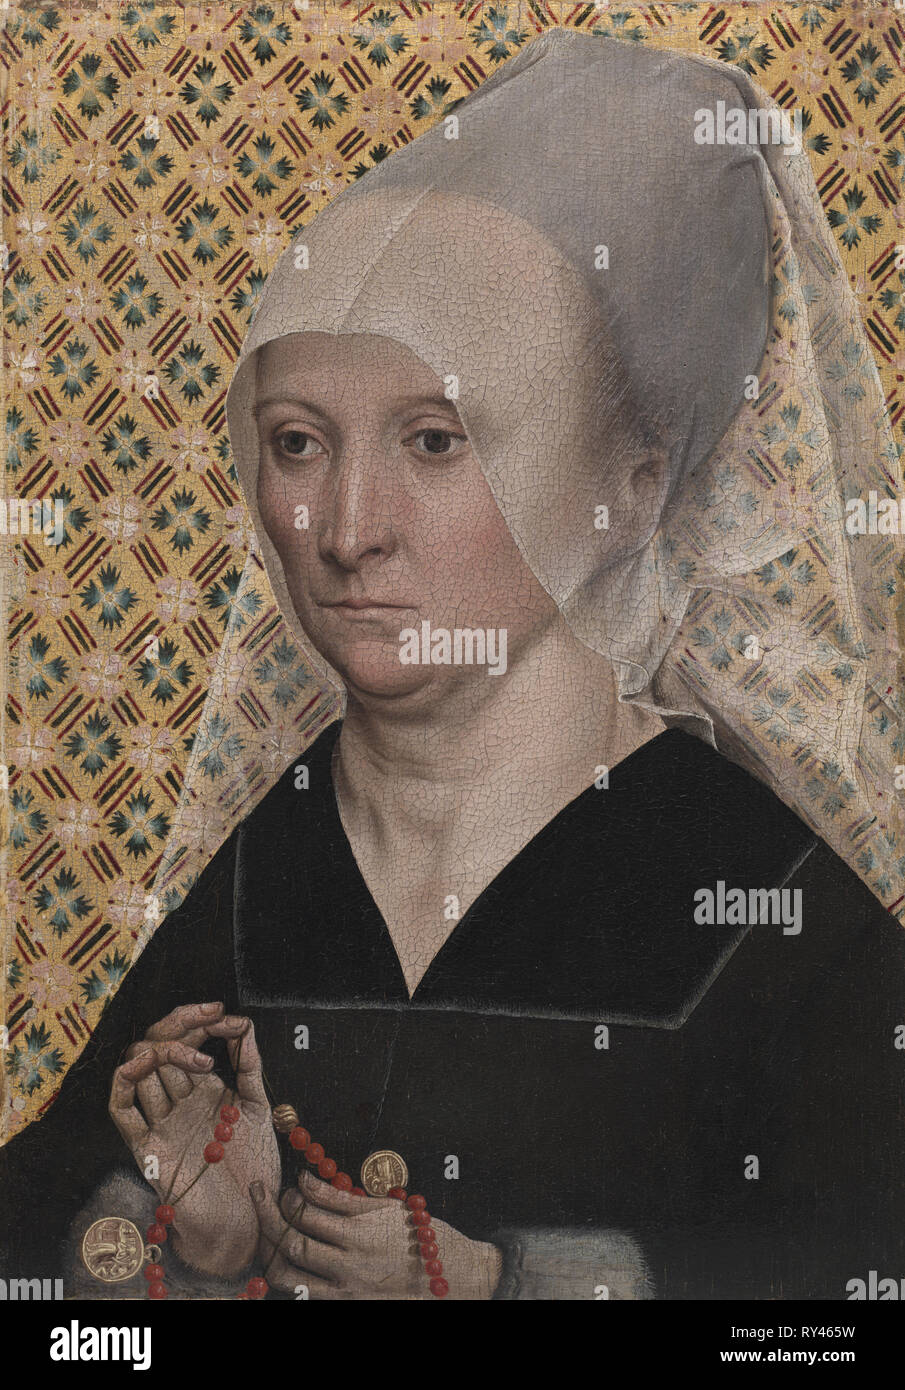 Portrait of a Woman, c. 1490-1495. Master of the Holy Kinship (German). Oil on wood; framed: 44 x 34.5 x 5.5 cm (17 5/16 x 13 9/16 x 2 3/16 in.); unframed: 30.3 x 21.3 cm (11 15/16 x 8 3/8 in - Stock Image